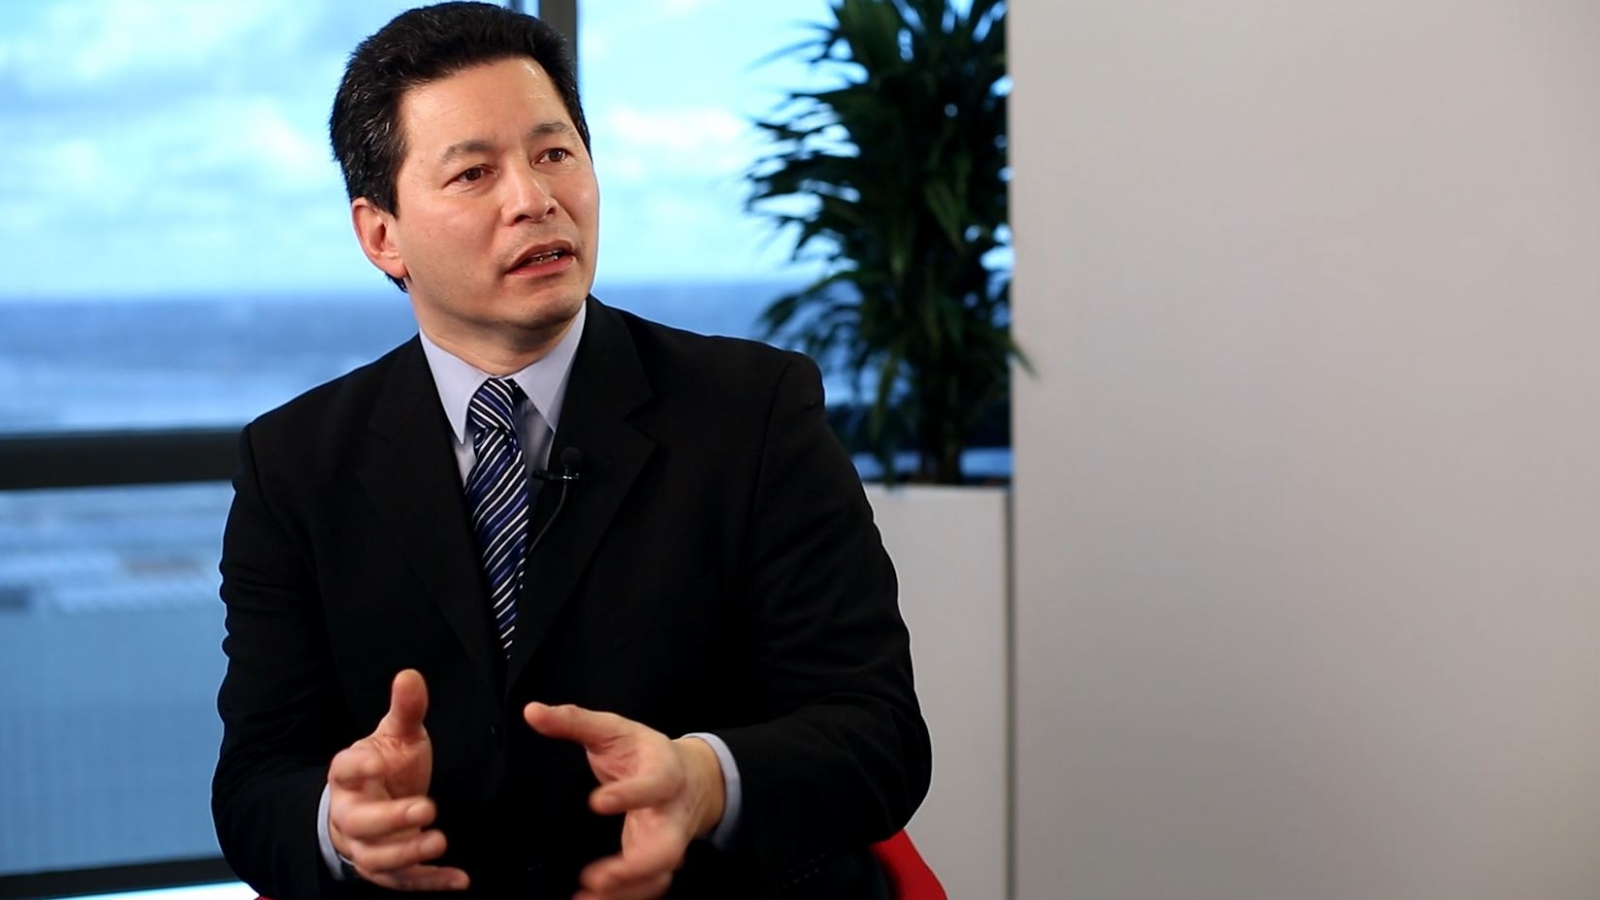 Edmund Shing: The renovation of B&Q and Screwfix owner Kingfisher